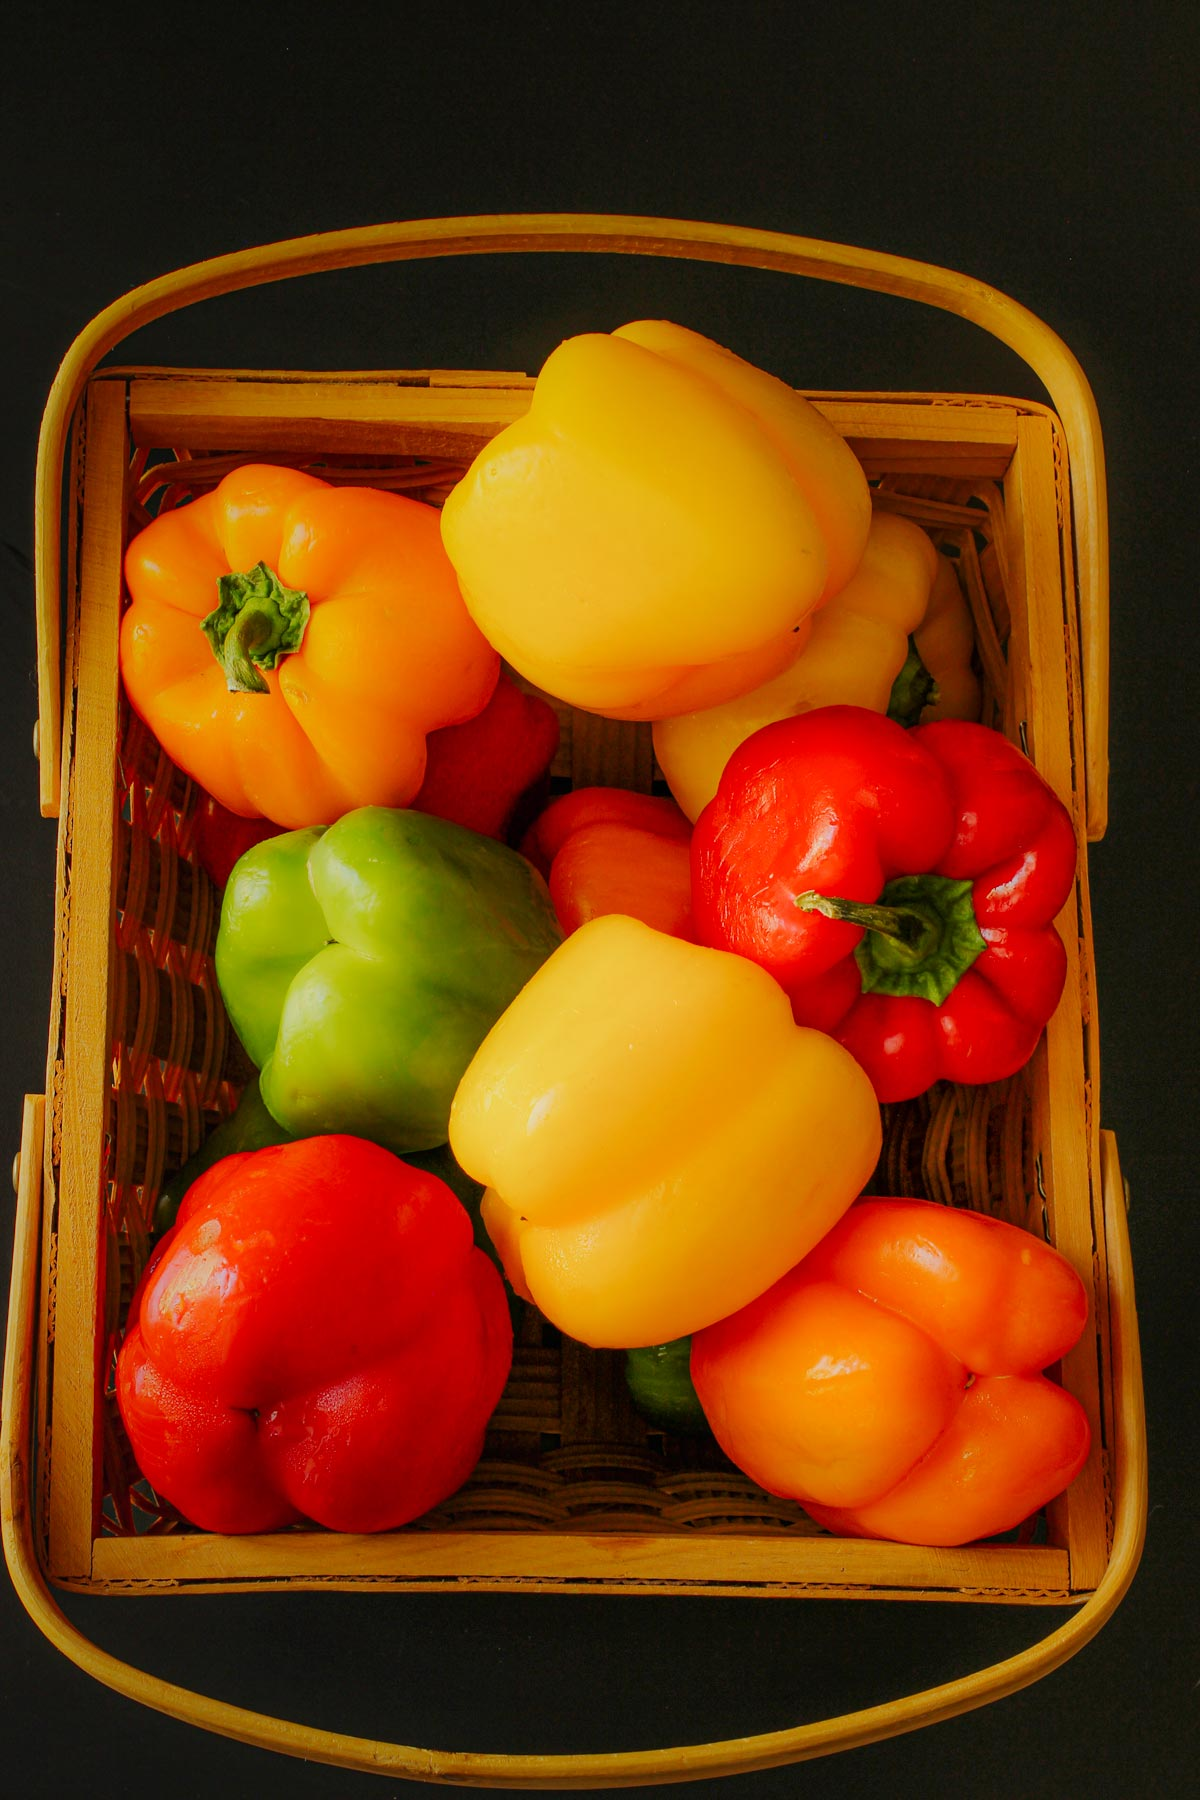 red, green, yellow, and orange bell peppers in a basket.